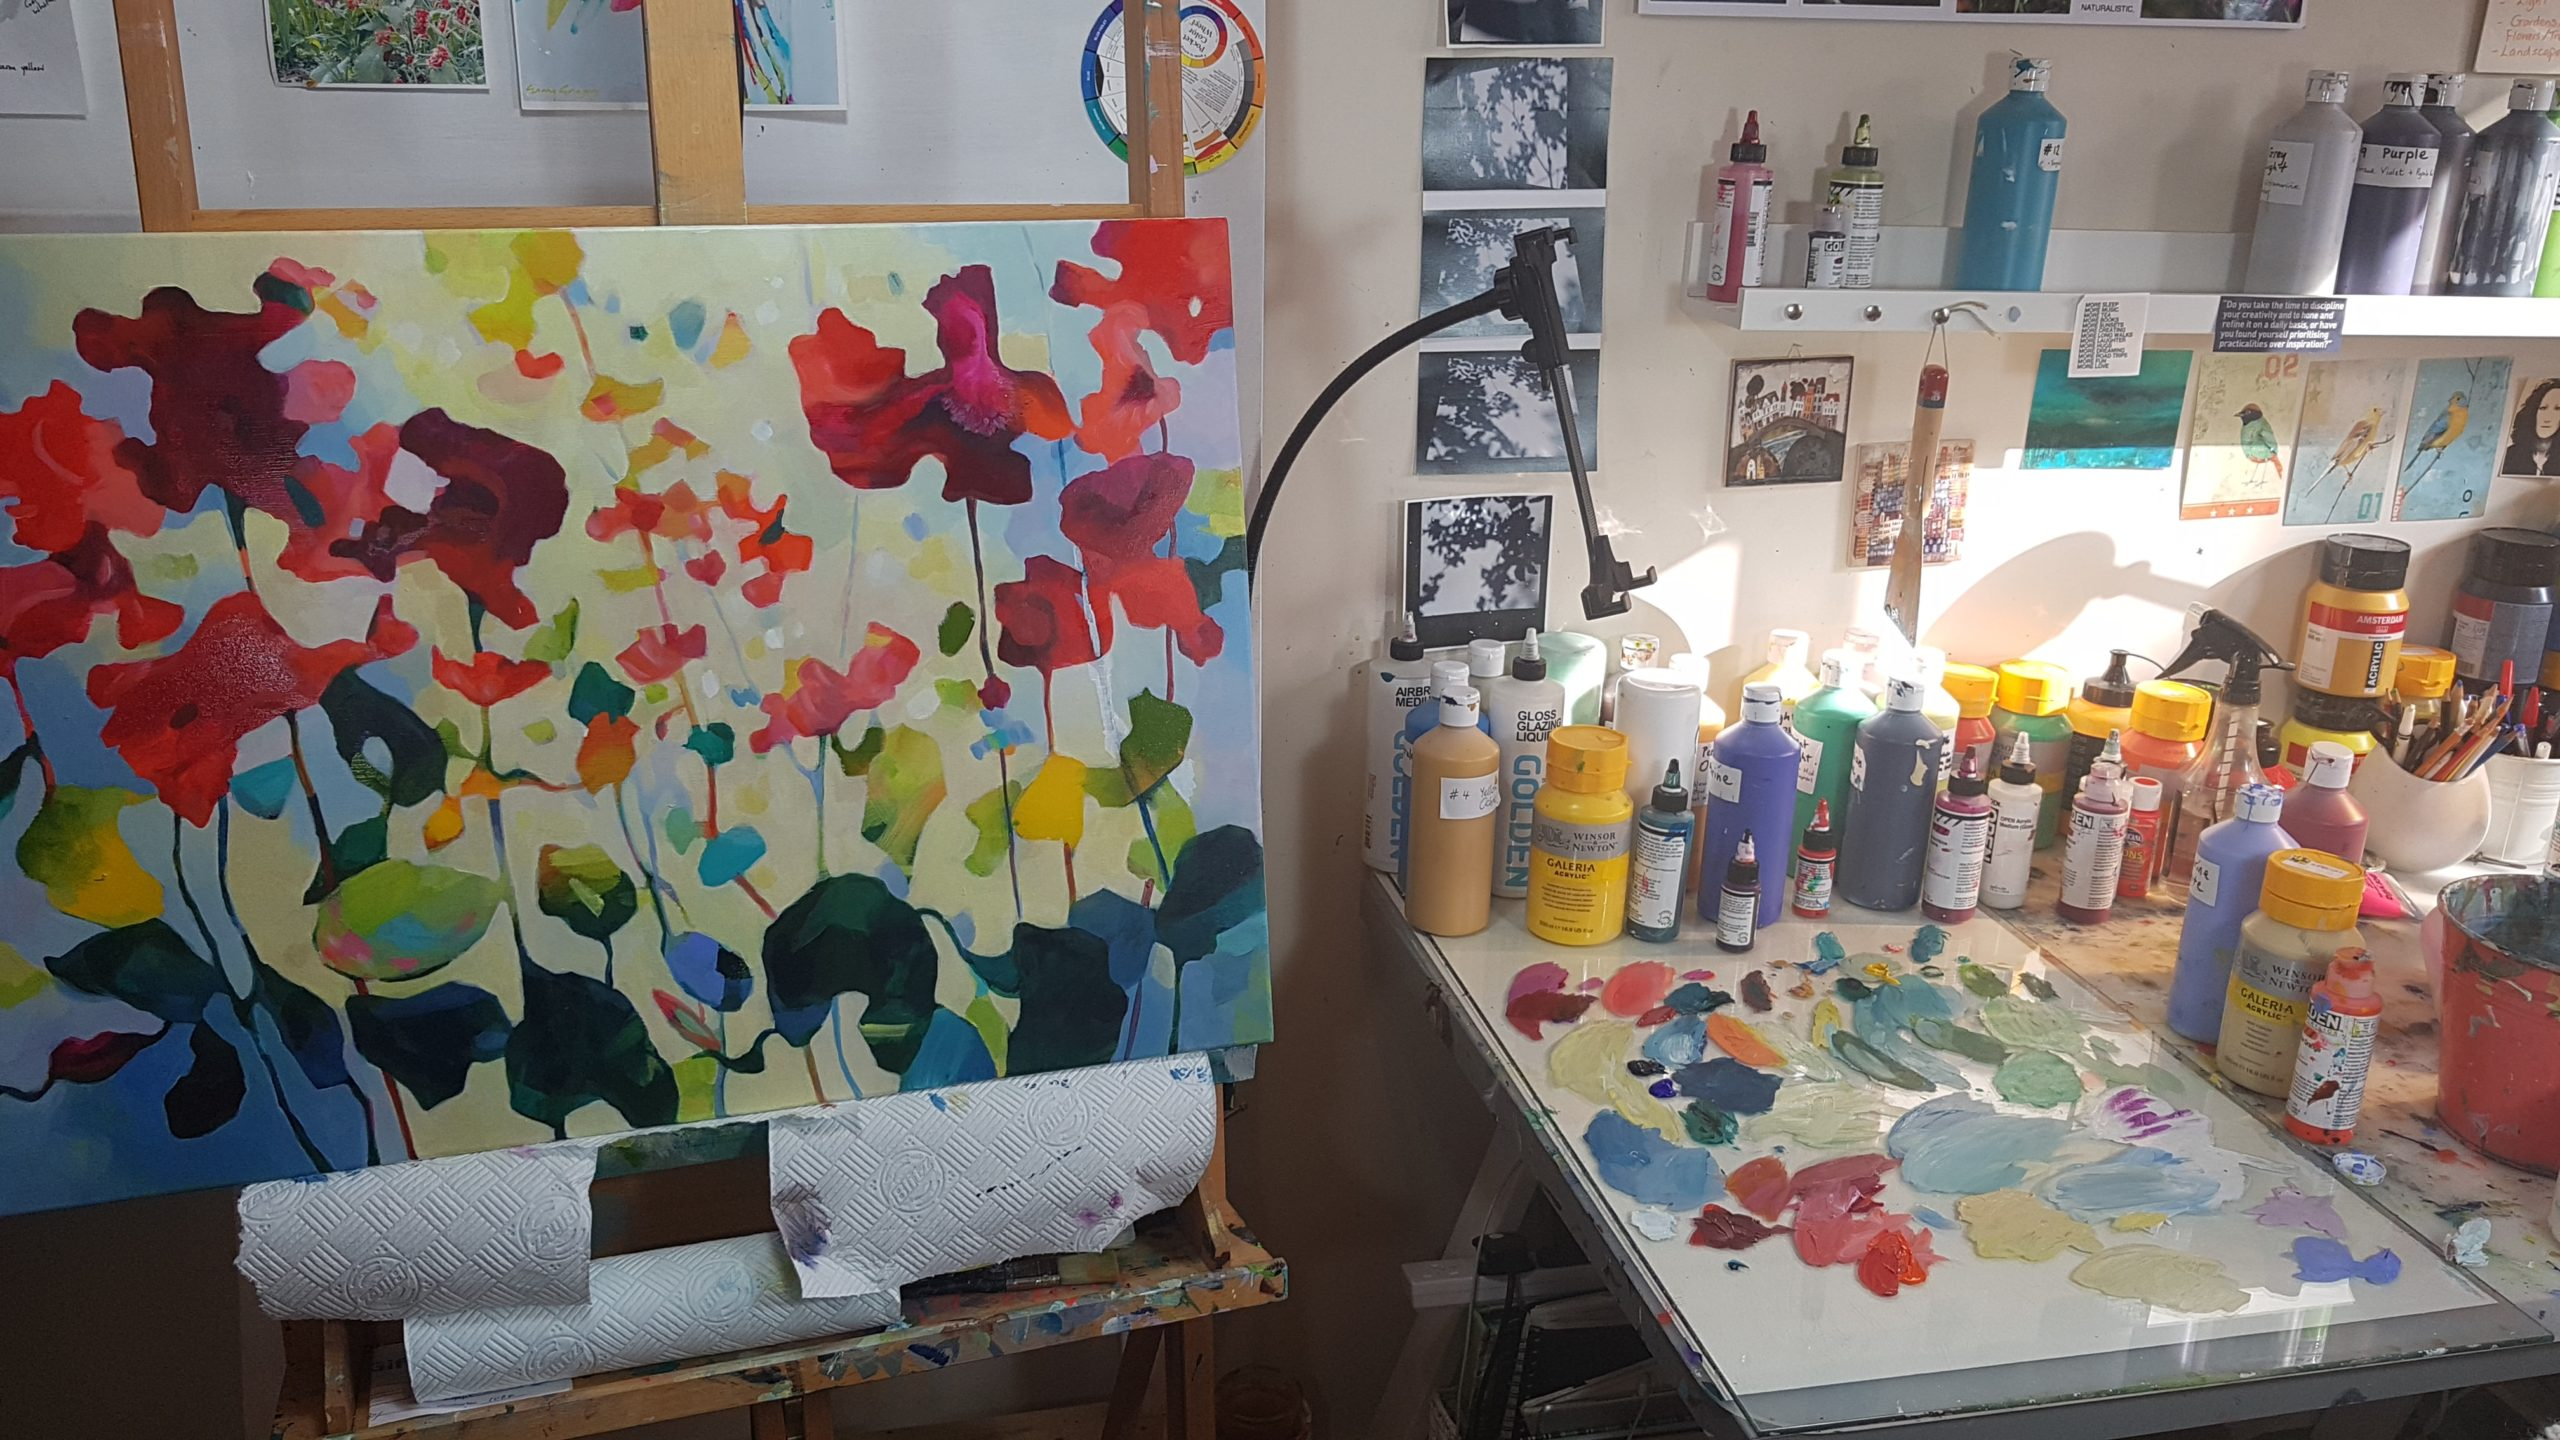 A blog post about how to create an art zone or small studio space in your home by Irish artist Eibhilin Crossan